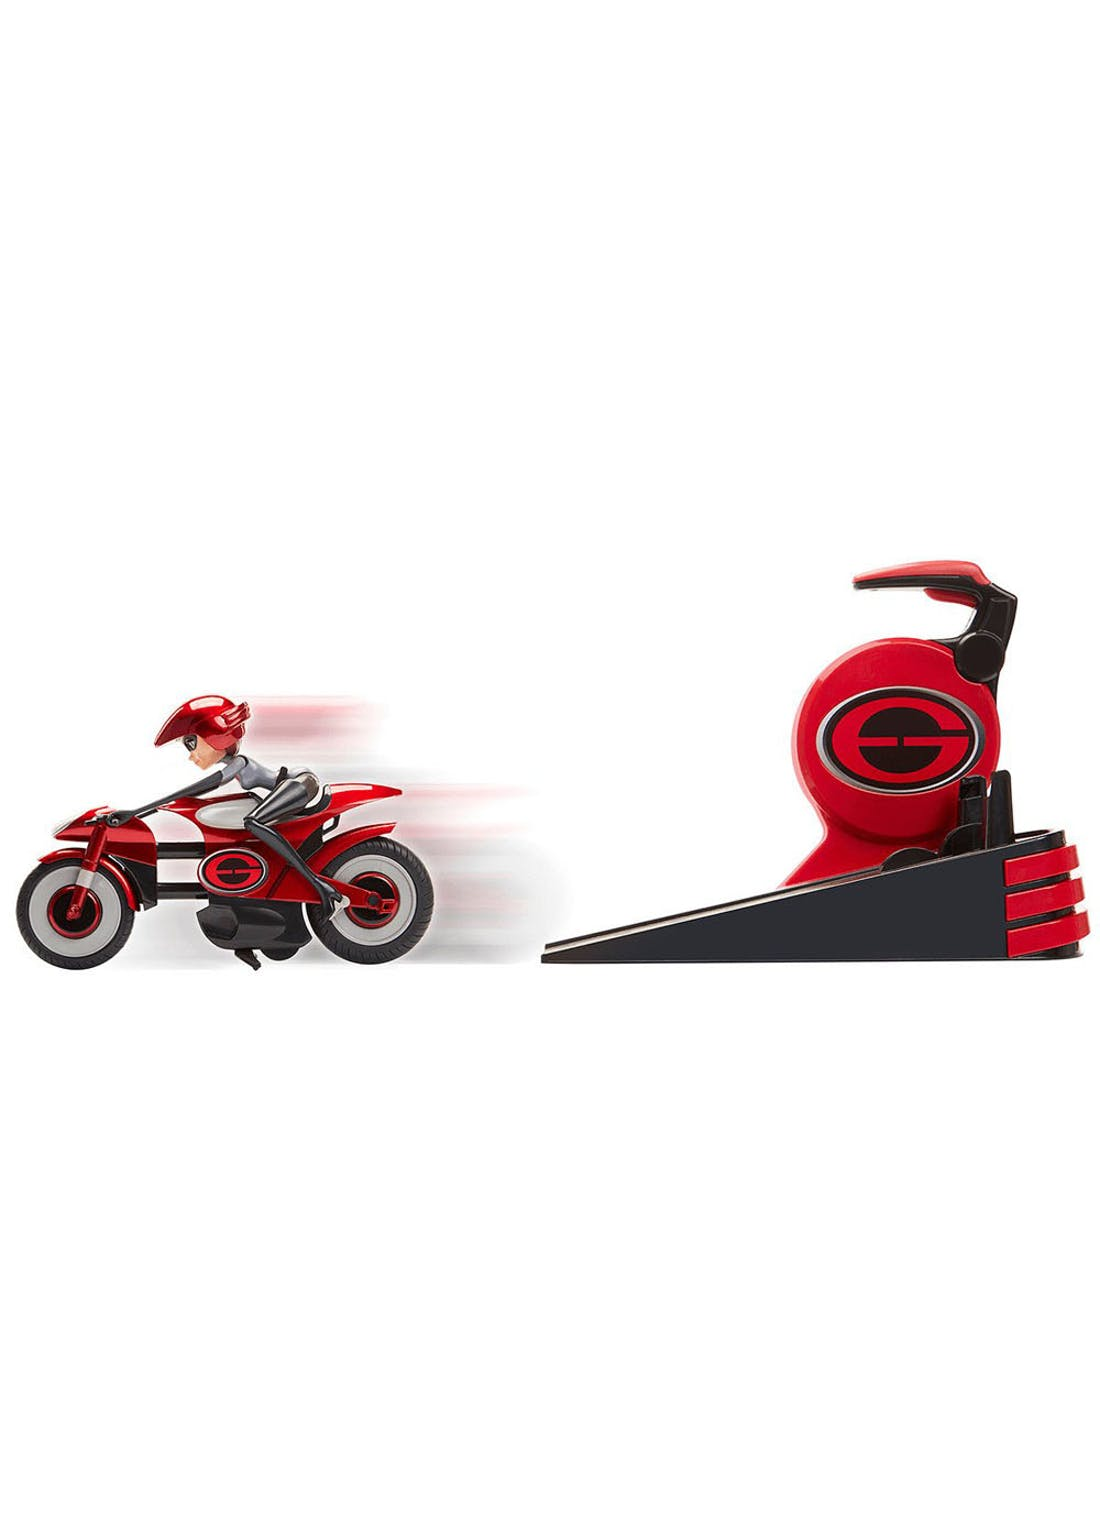 Disney Pixar Incredibles 2 Jumping Incredible Vehicle (31cm x 23cm x 14.5cm)